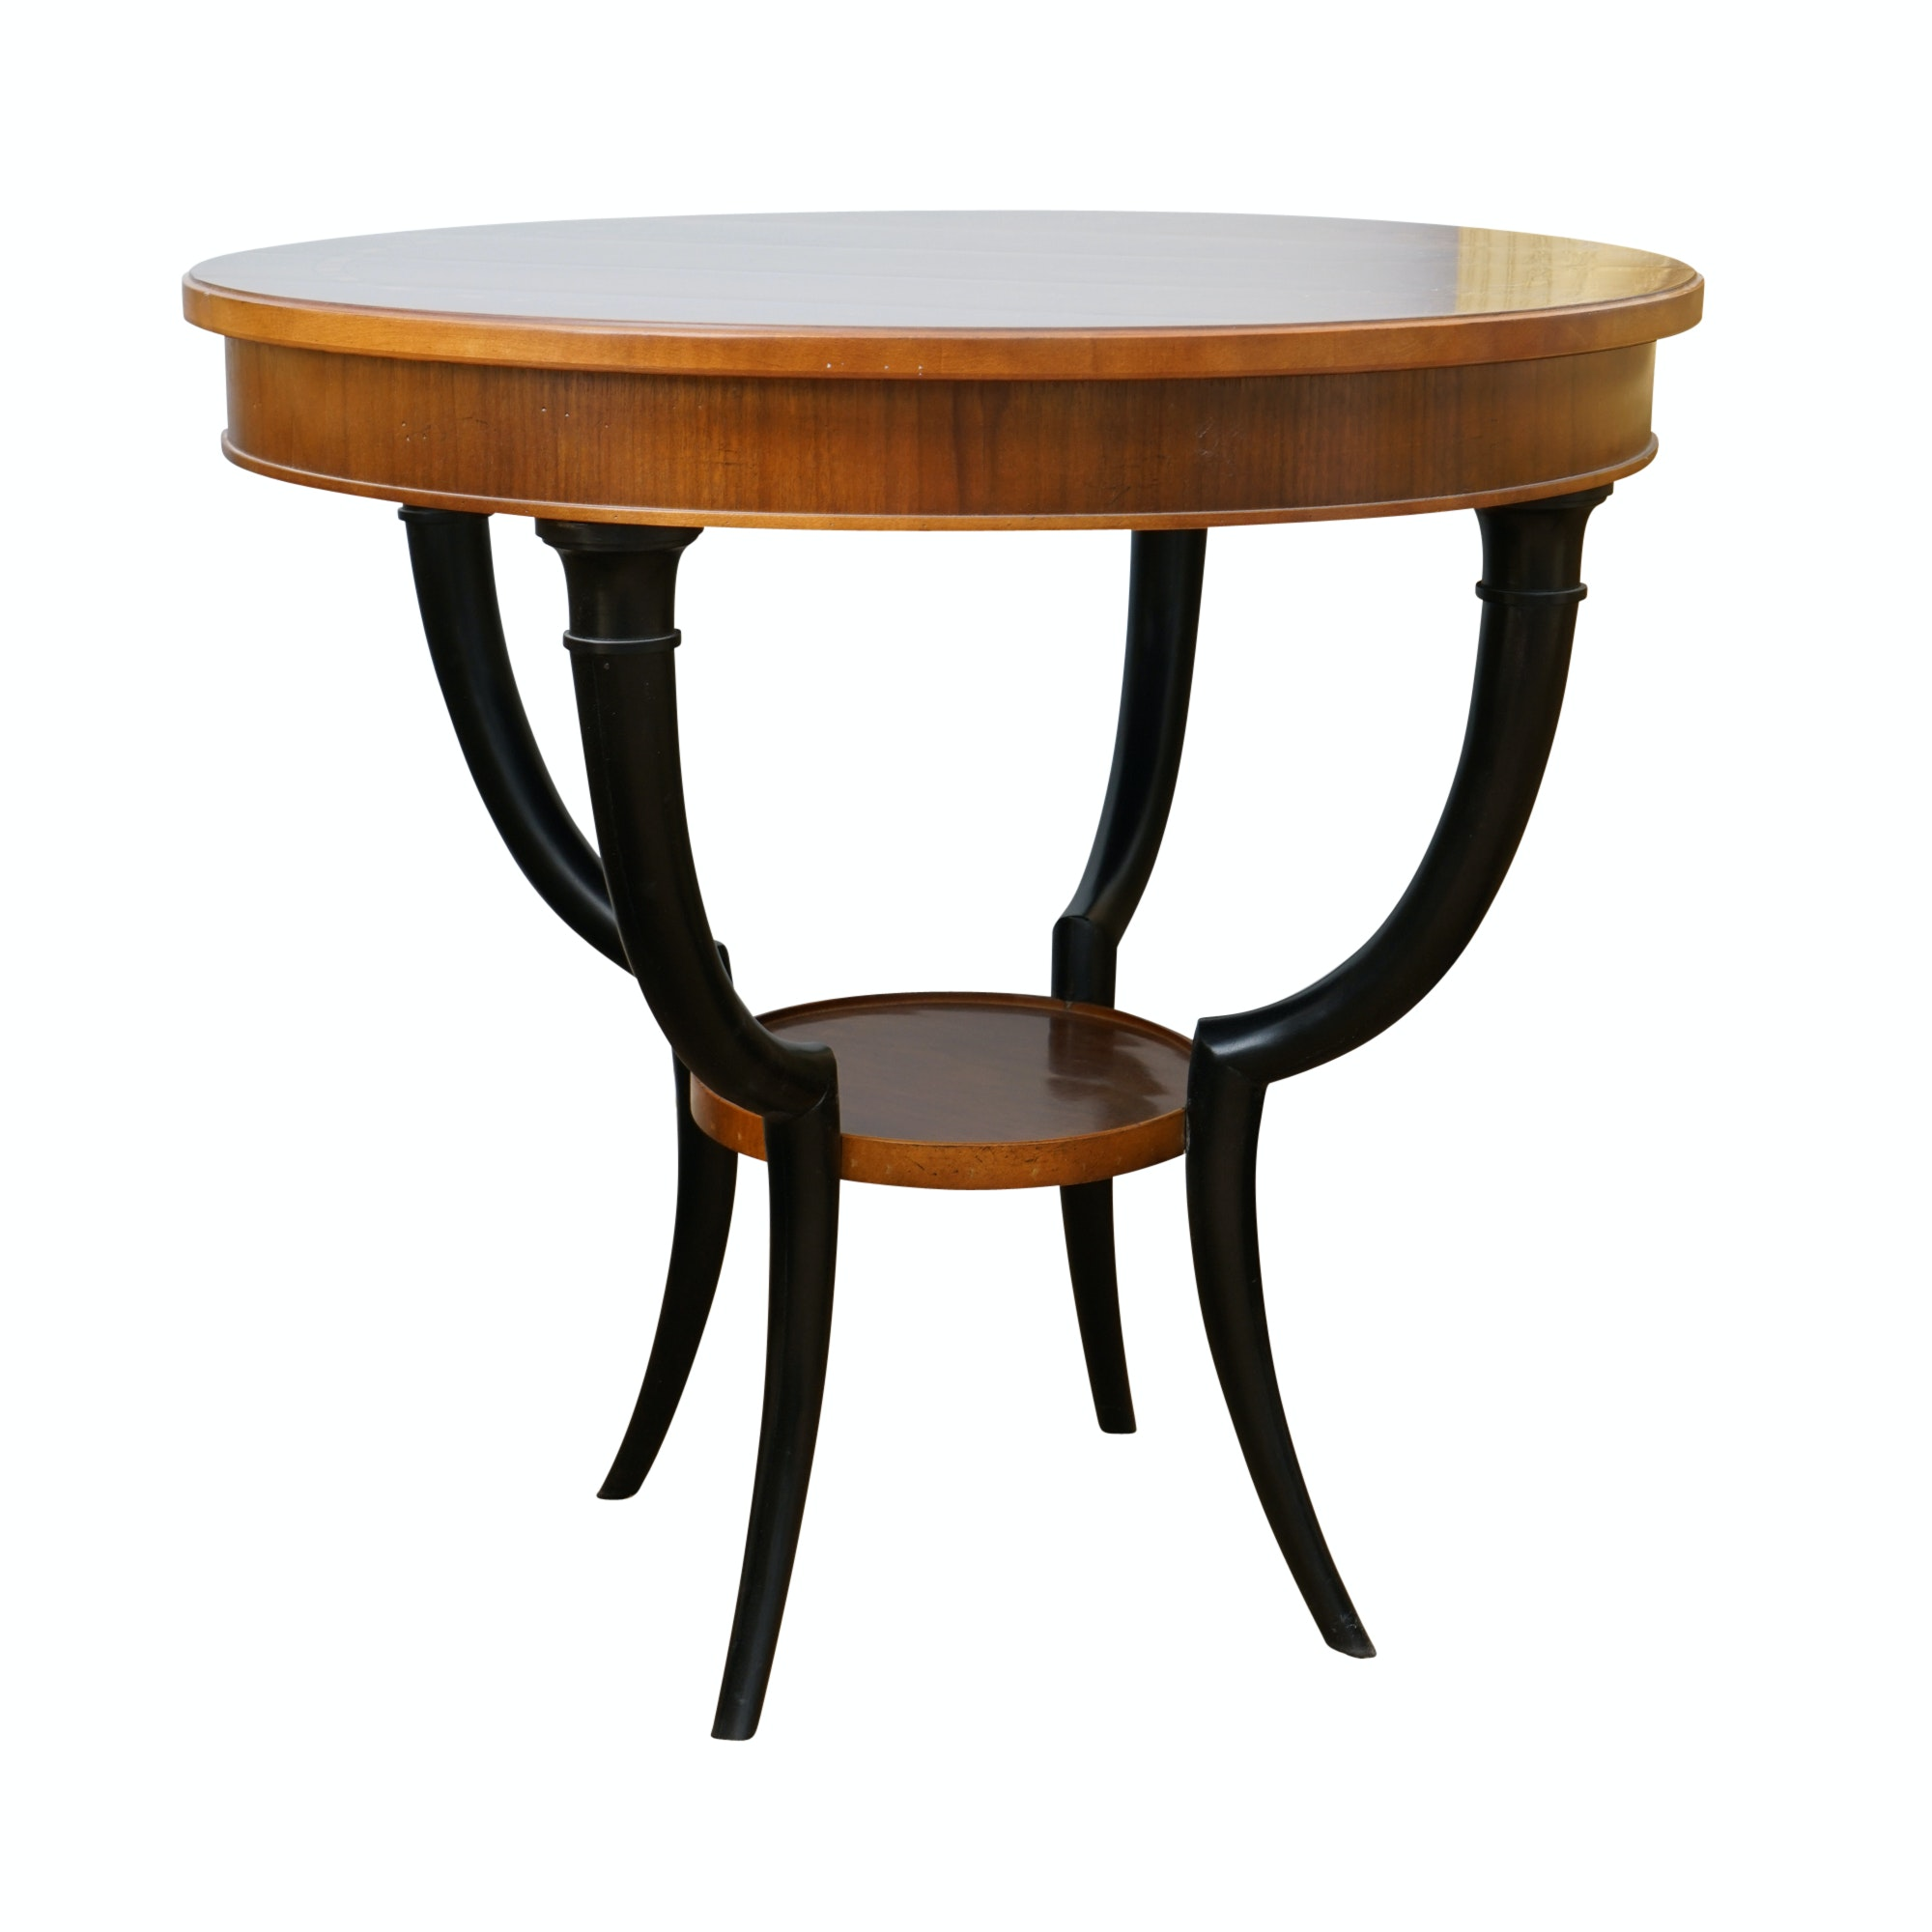 Inlaid Wood Drum Table by Baker